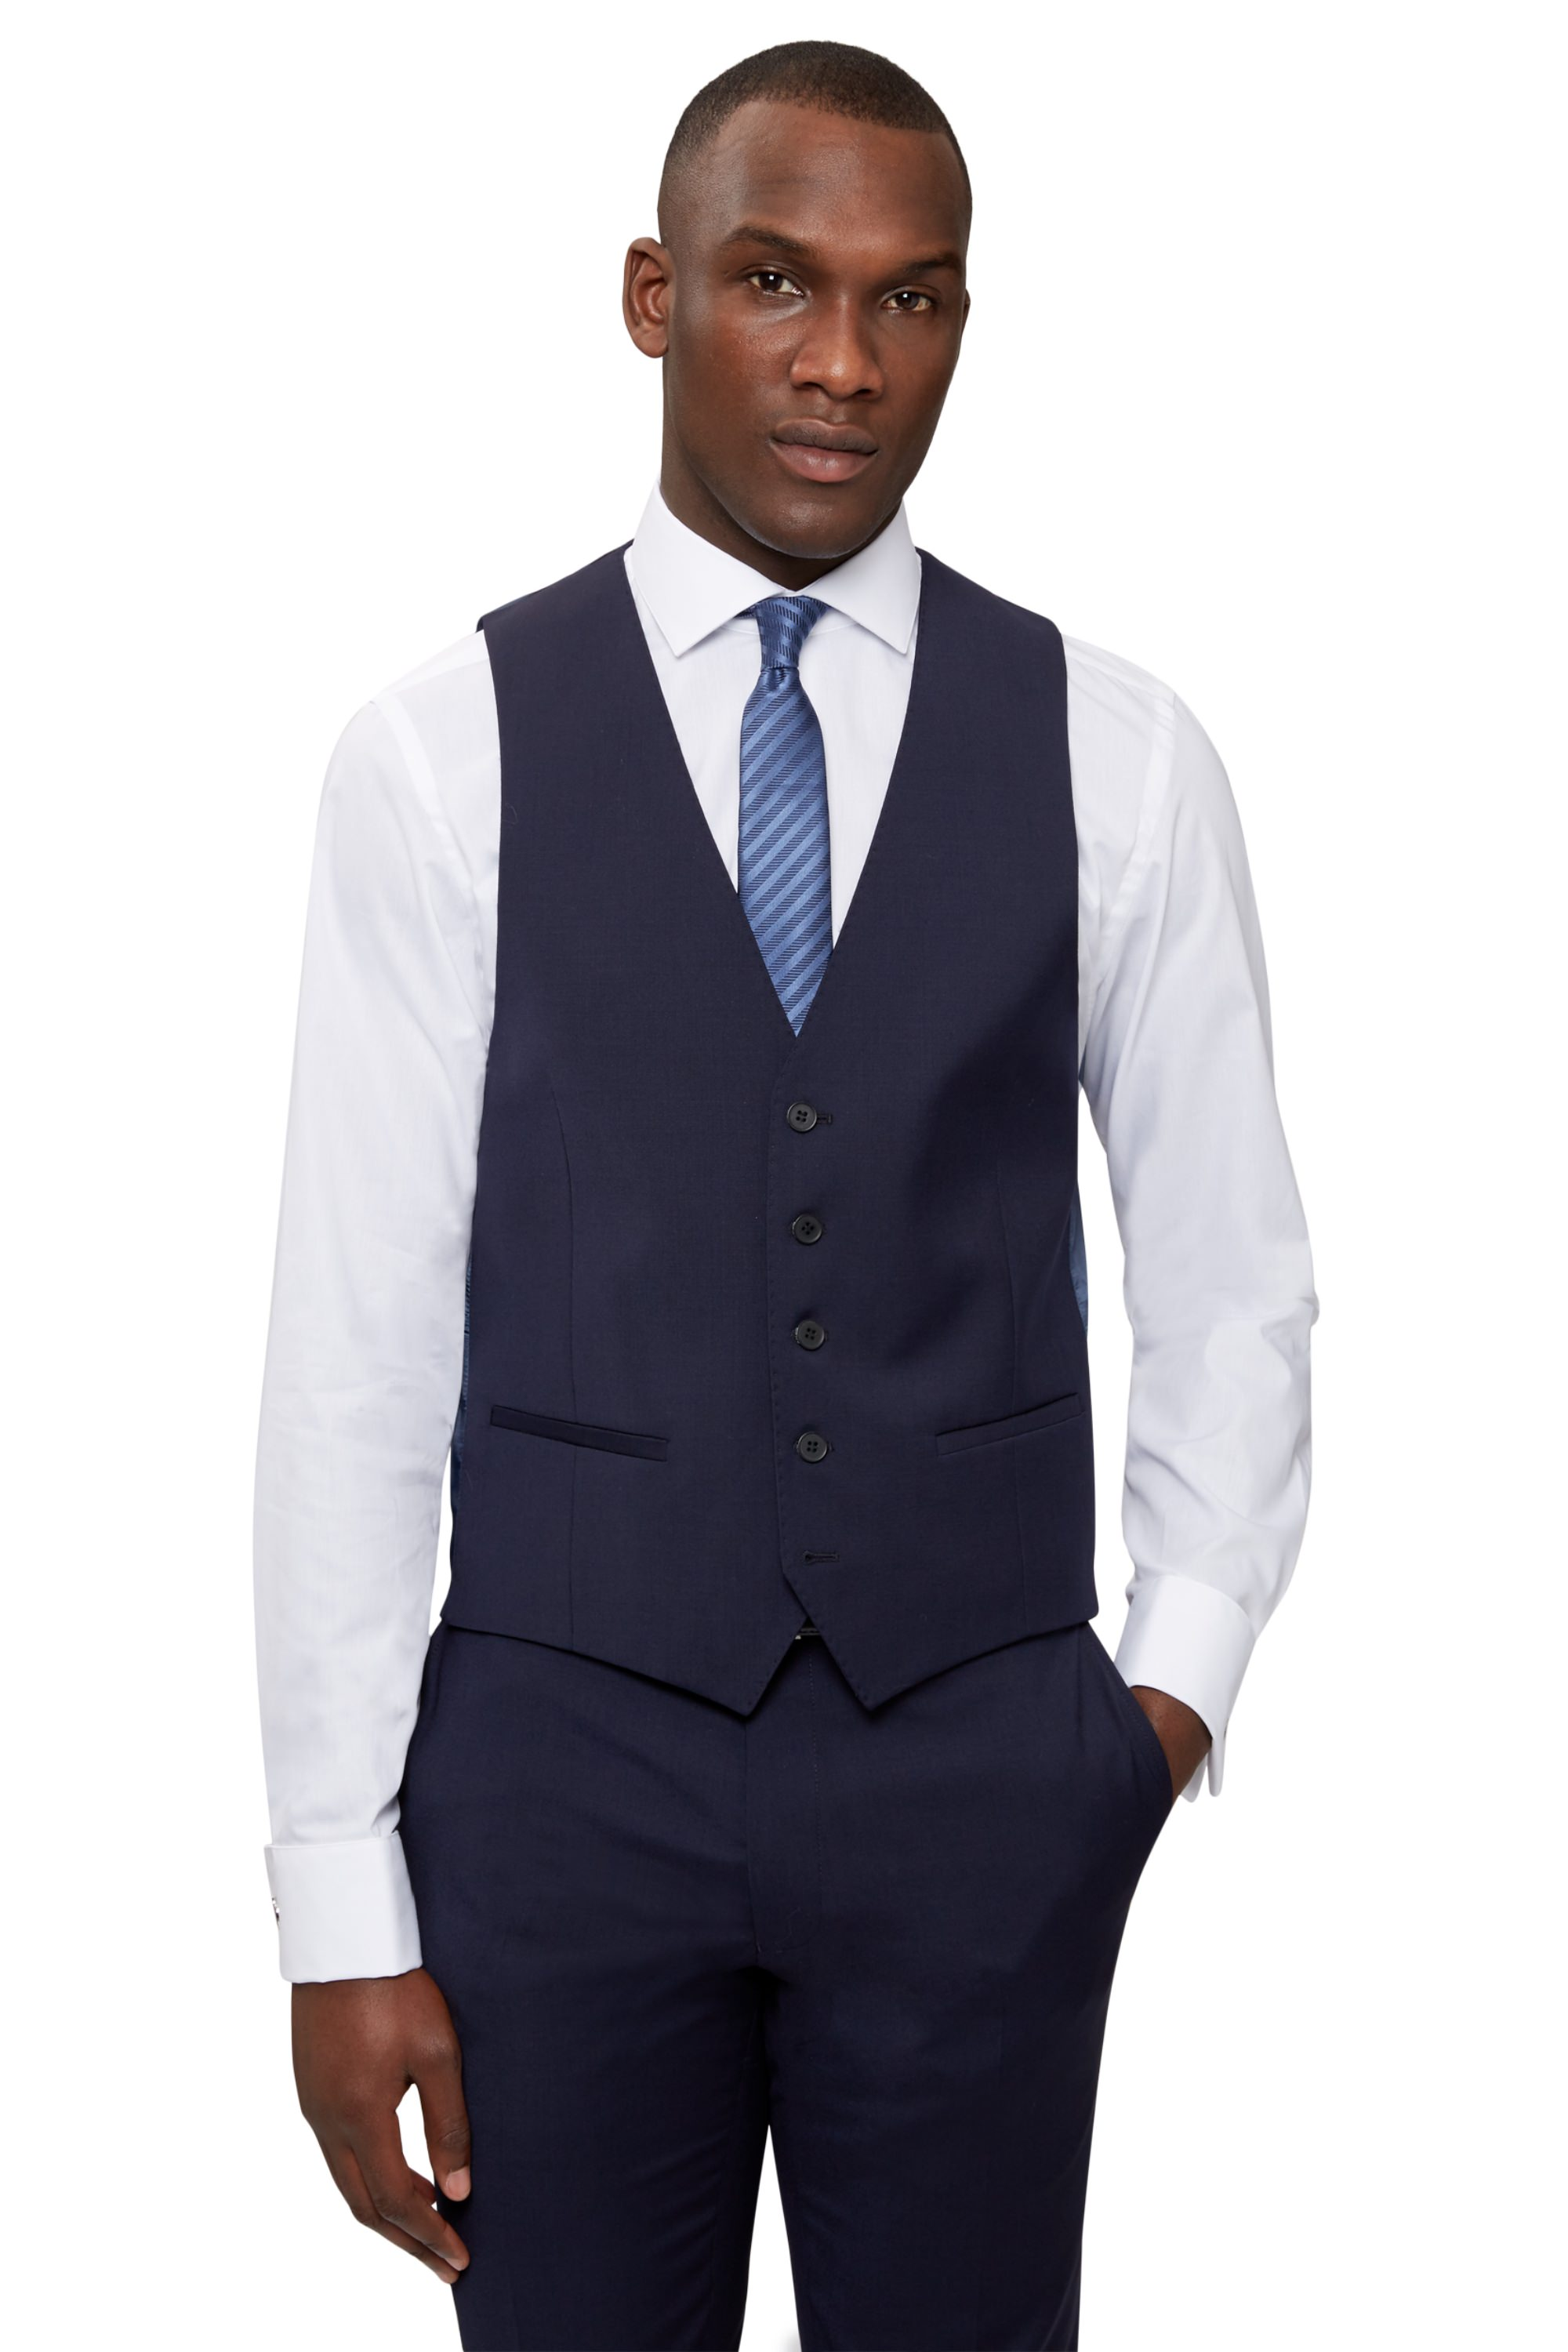 da7359e777 Details about DKNY Mens Navy Blue Waistcoat Slim Fit Single Breasted Wool  Suit Vest Formal